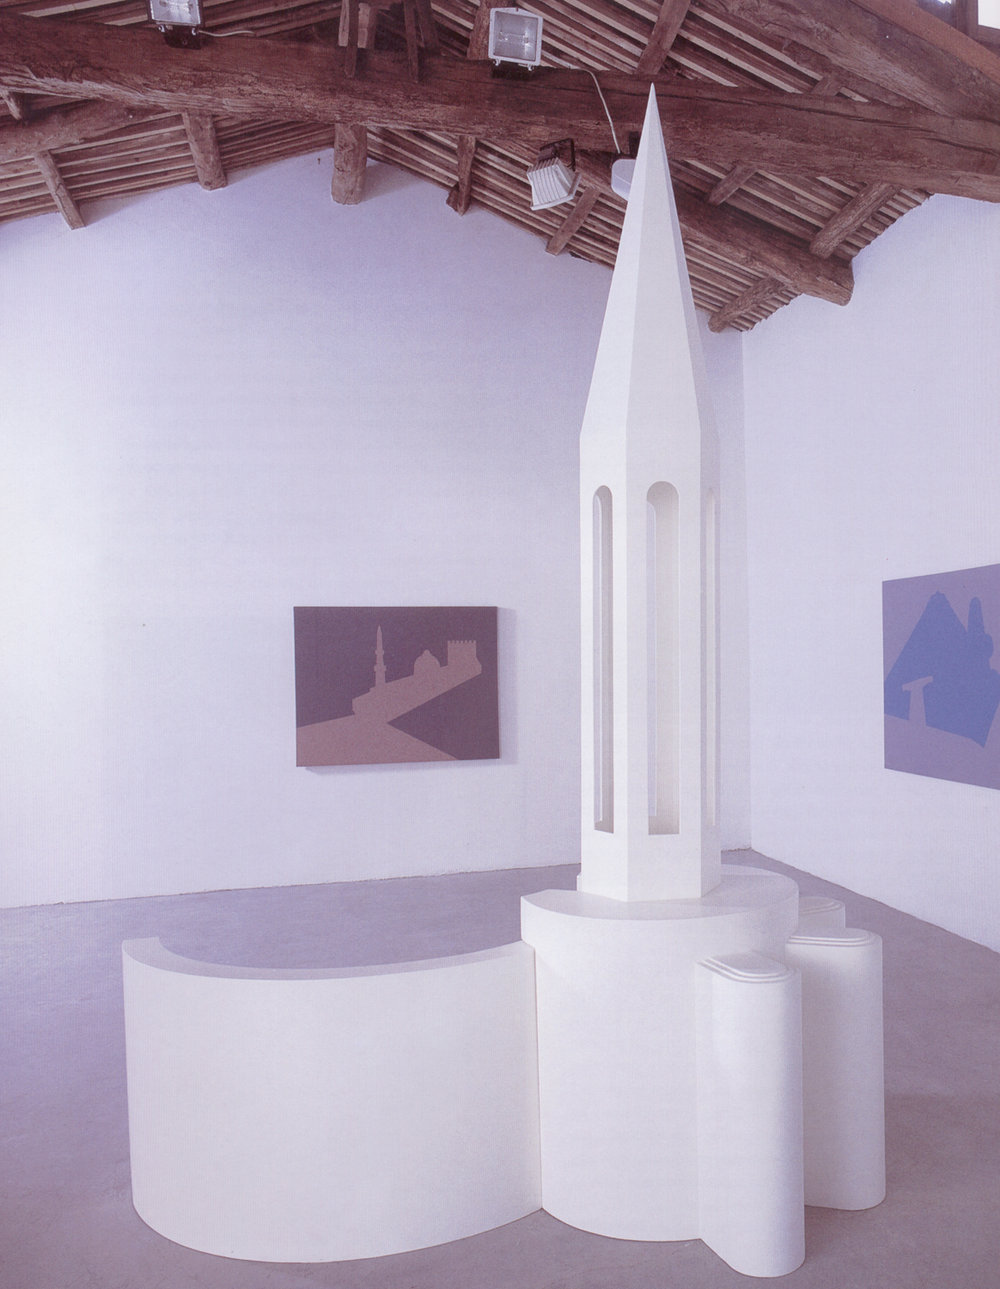 Reconfigured Monuments, 2001, sculpture: painted wood, 210 x 150 x 270 cm and three paintings: acrylic on canvas,140 x 110 cm. Installation view , Marco Noire Contemporary Arts Gallery, Turin, Italy, 2002. Courtesy: The Modern Art Gallery (GAM), Turin, Italy